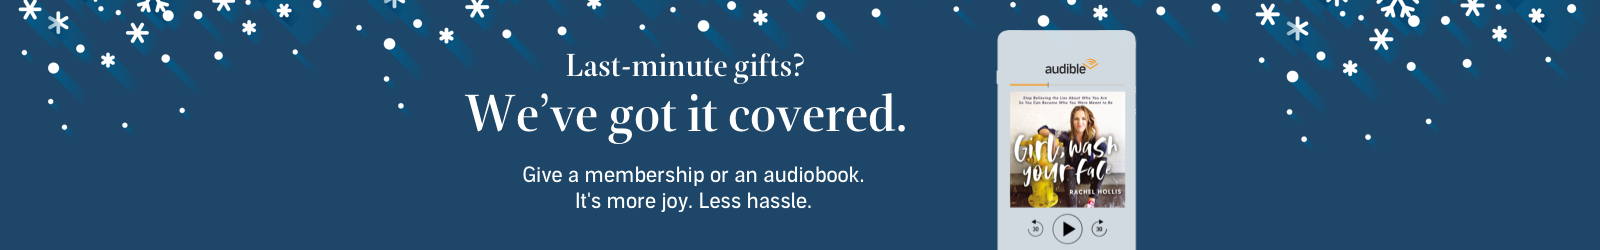 Give the gift of audible. These holidays, give them more of what they're into with an Audible gift